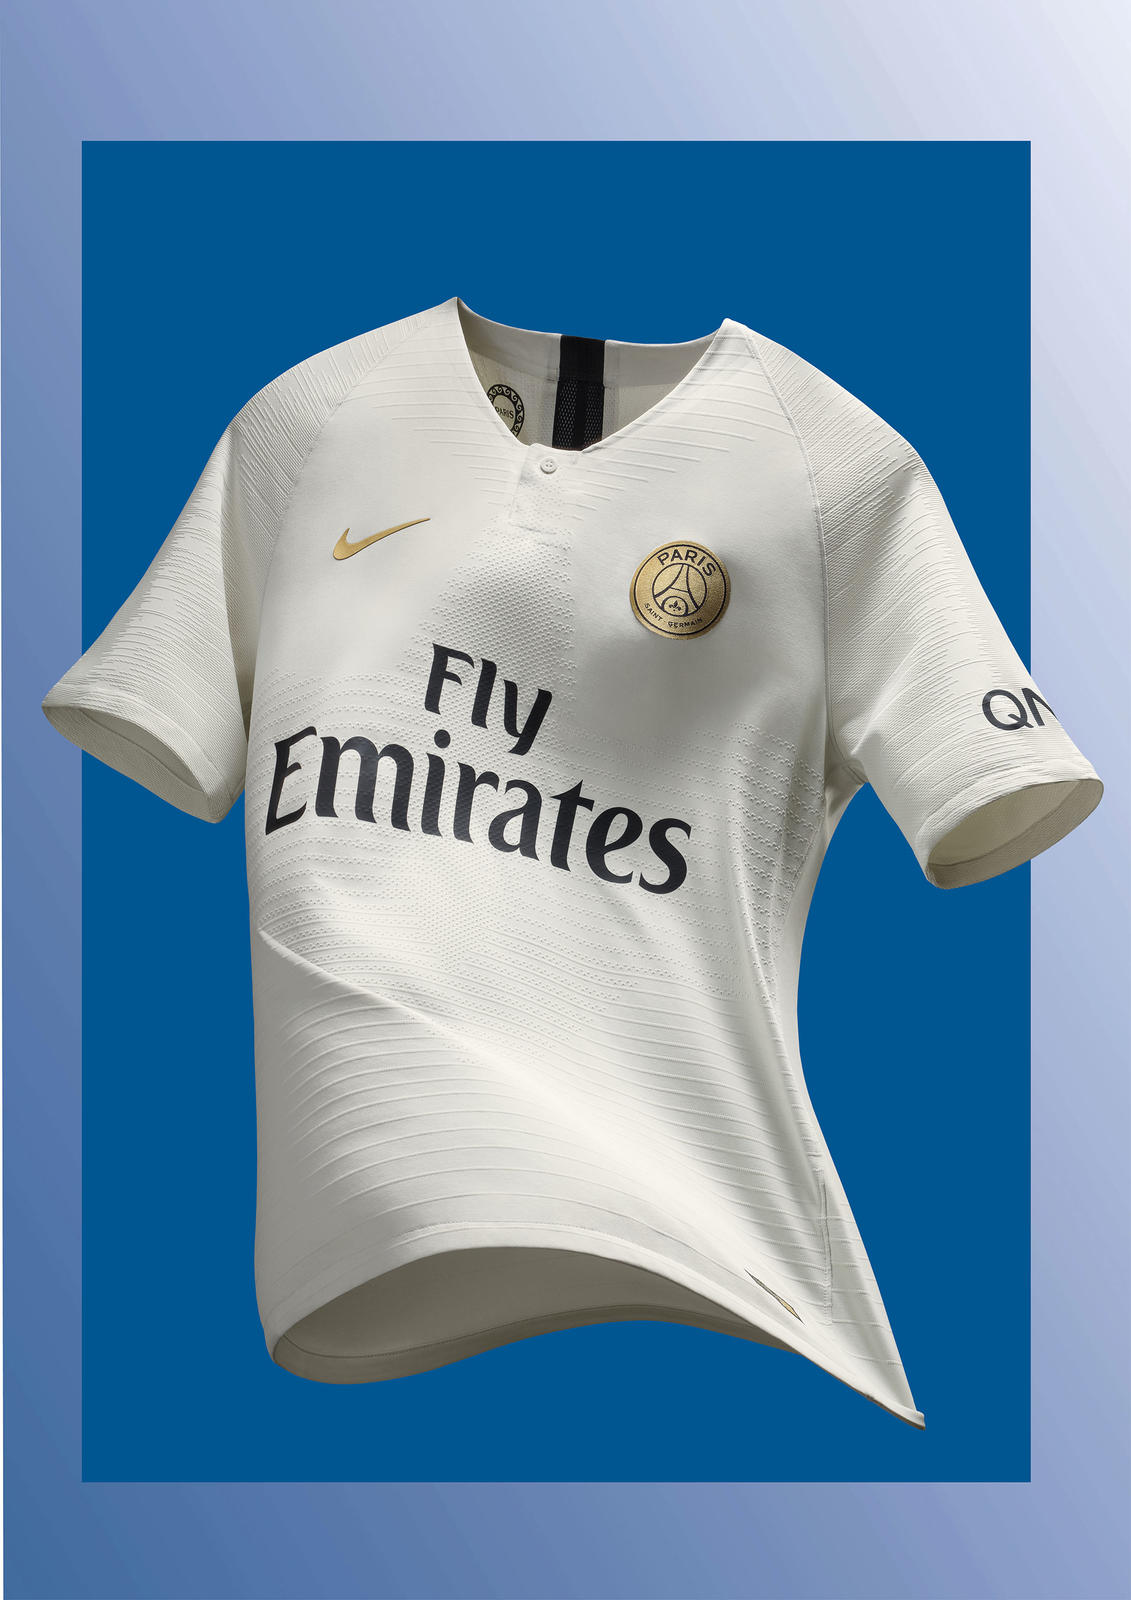 9c76847d1 A golden club crest and golden nike swoosh embellish light stone new away  kit jpg 1131x1600